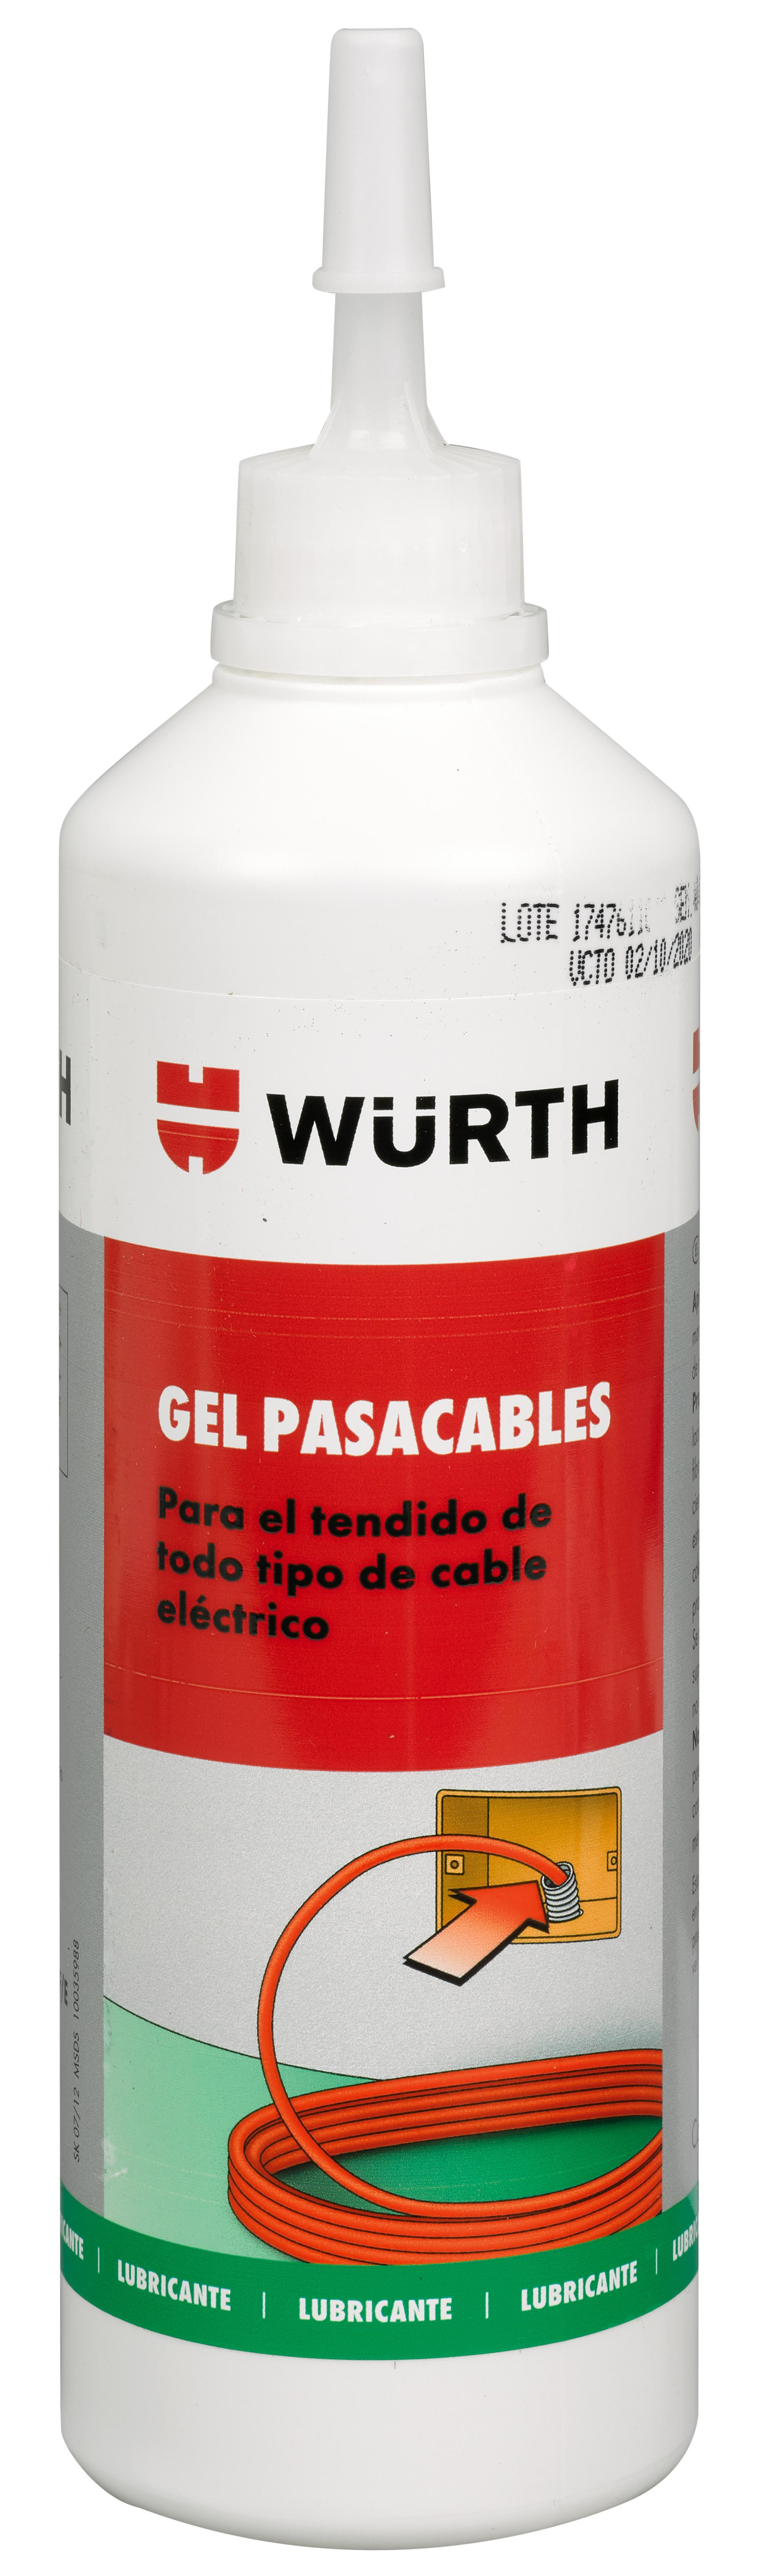 GEL PASACABLES 500ML